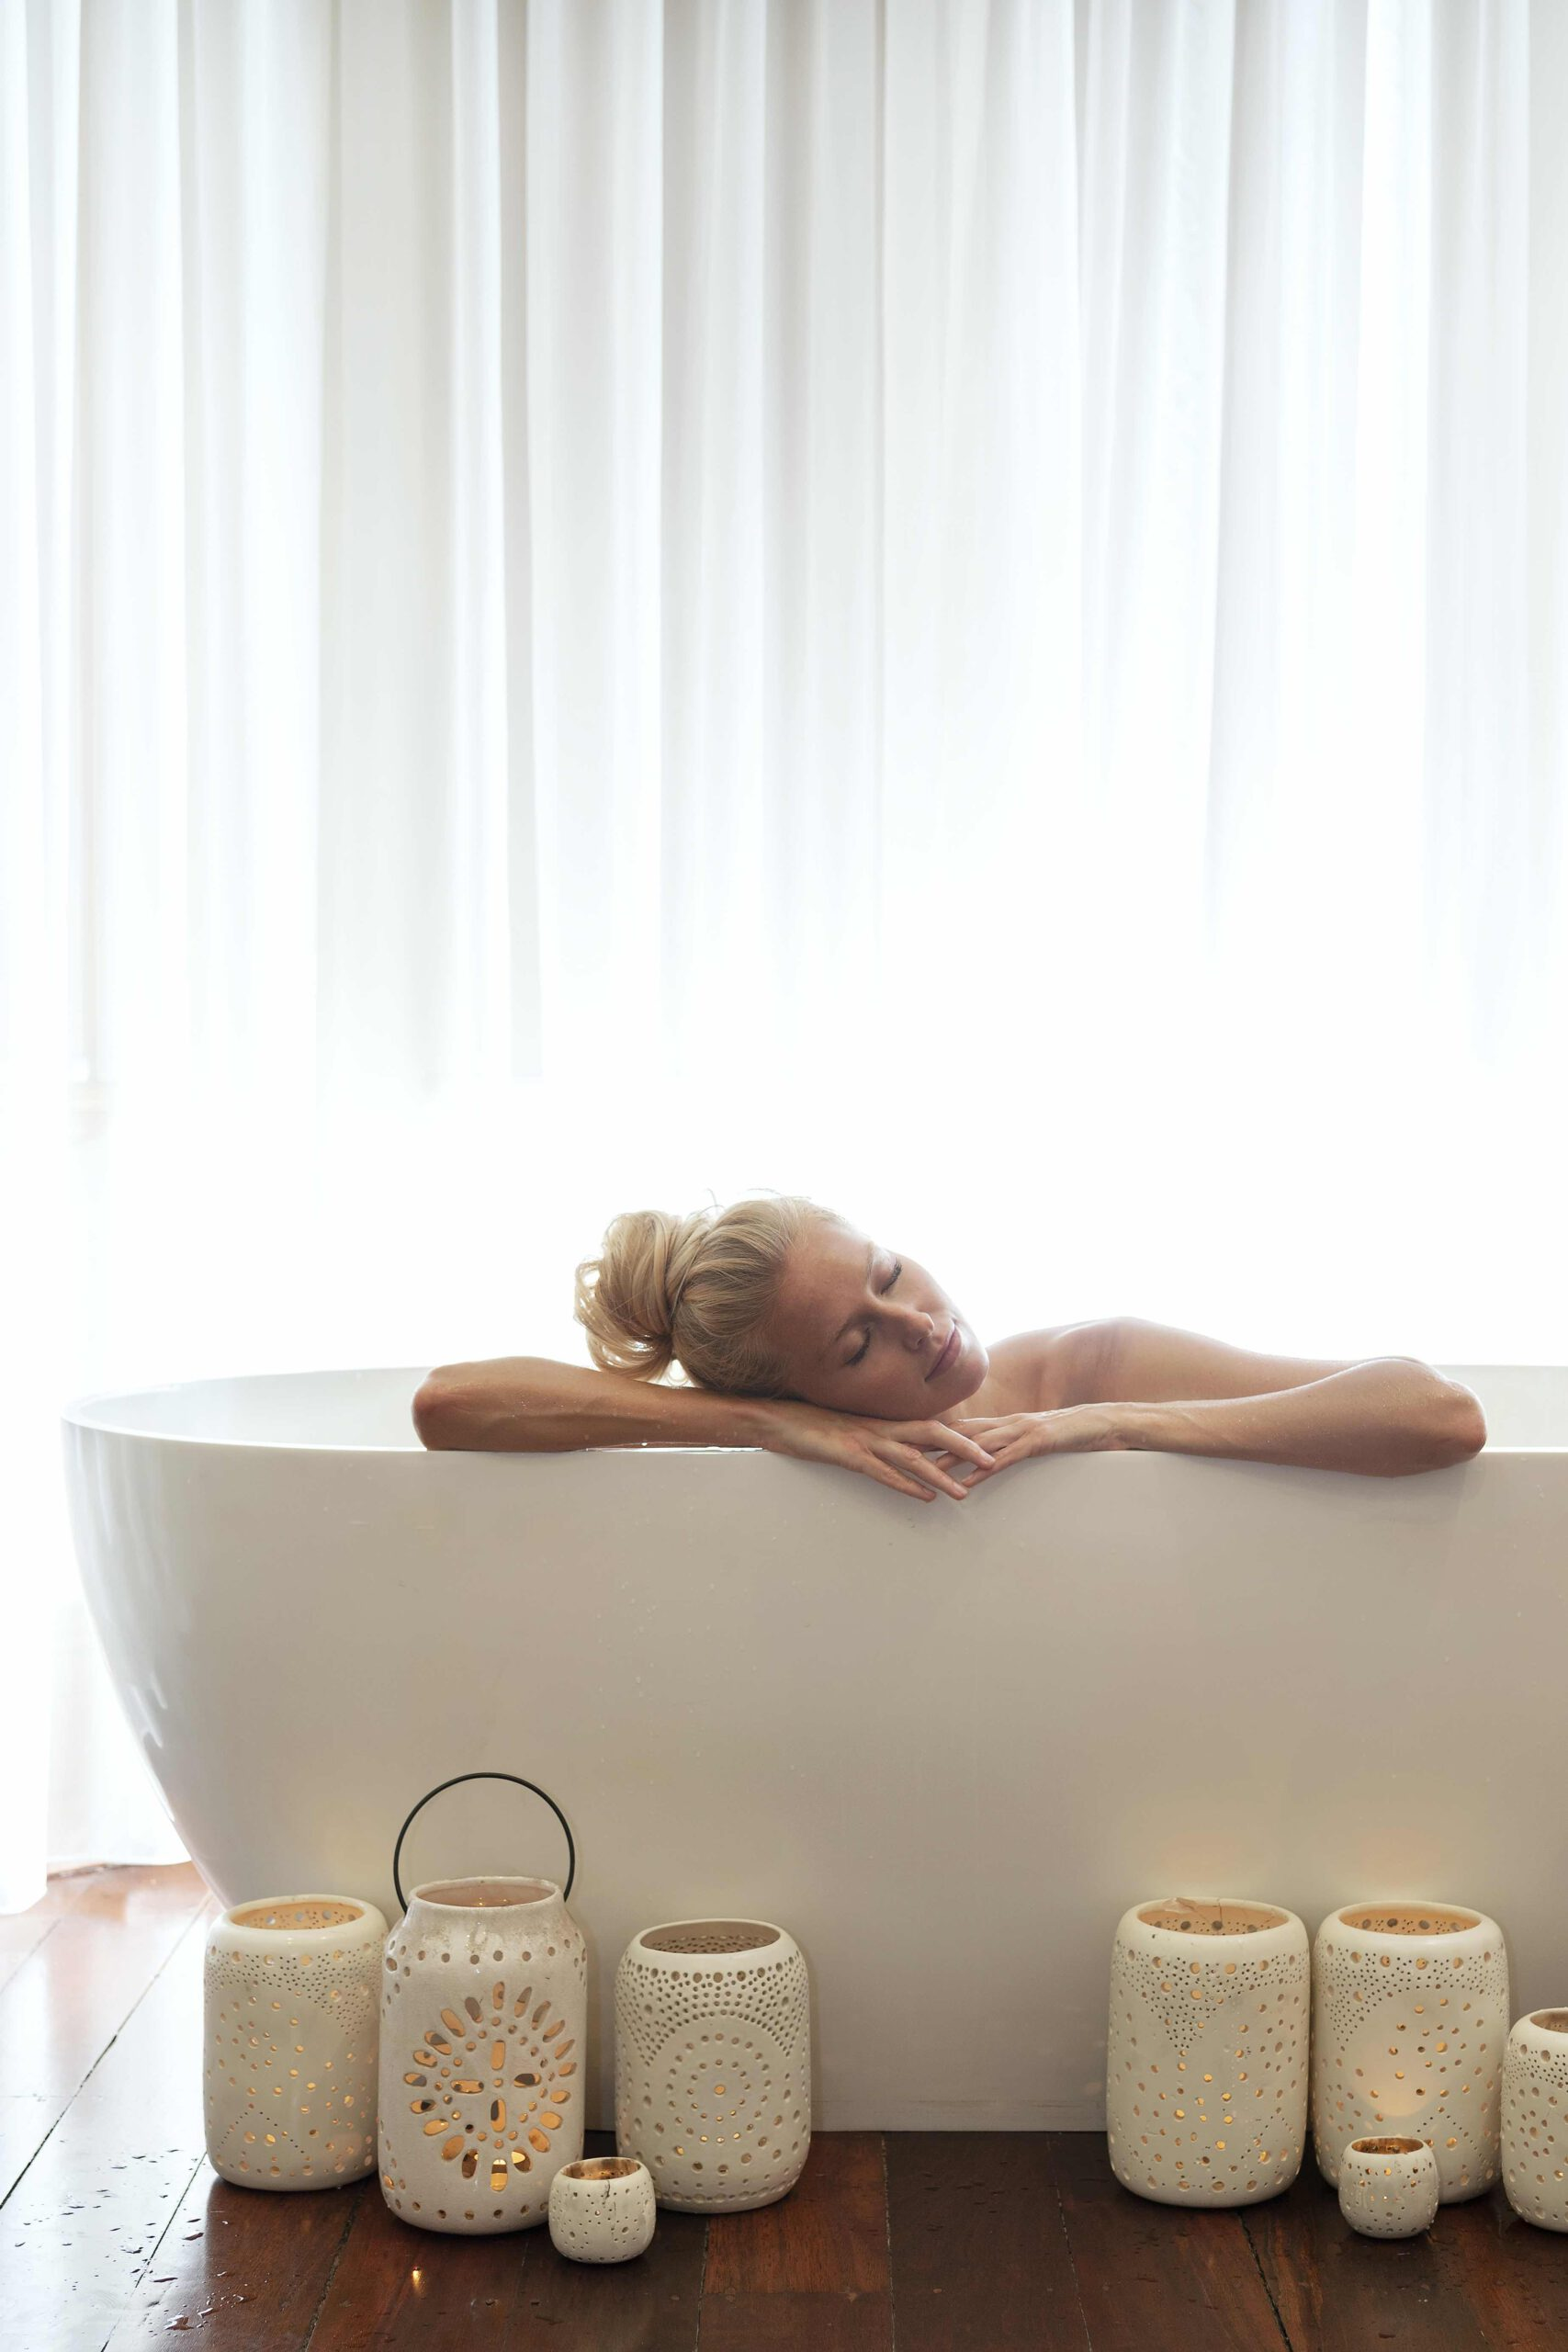 Woman lies in big white bath, candles are on the floor